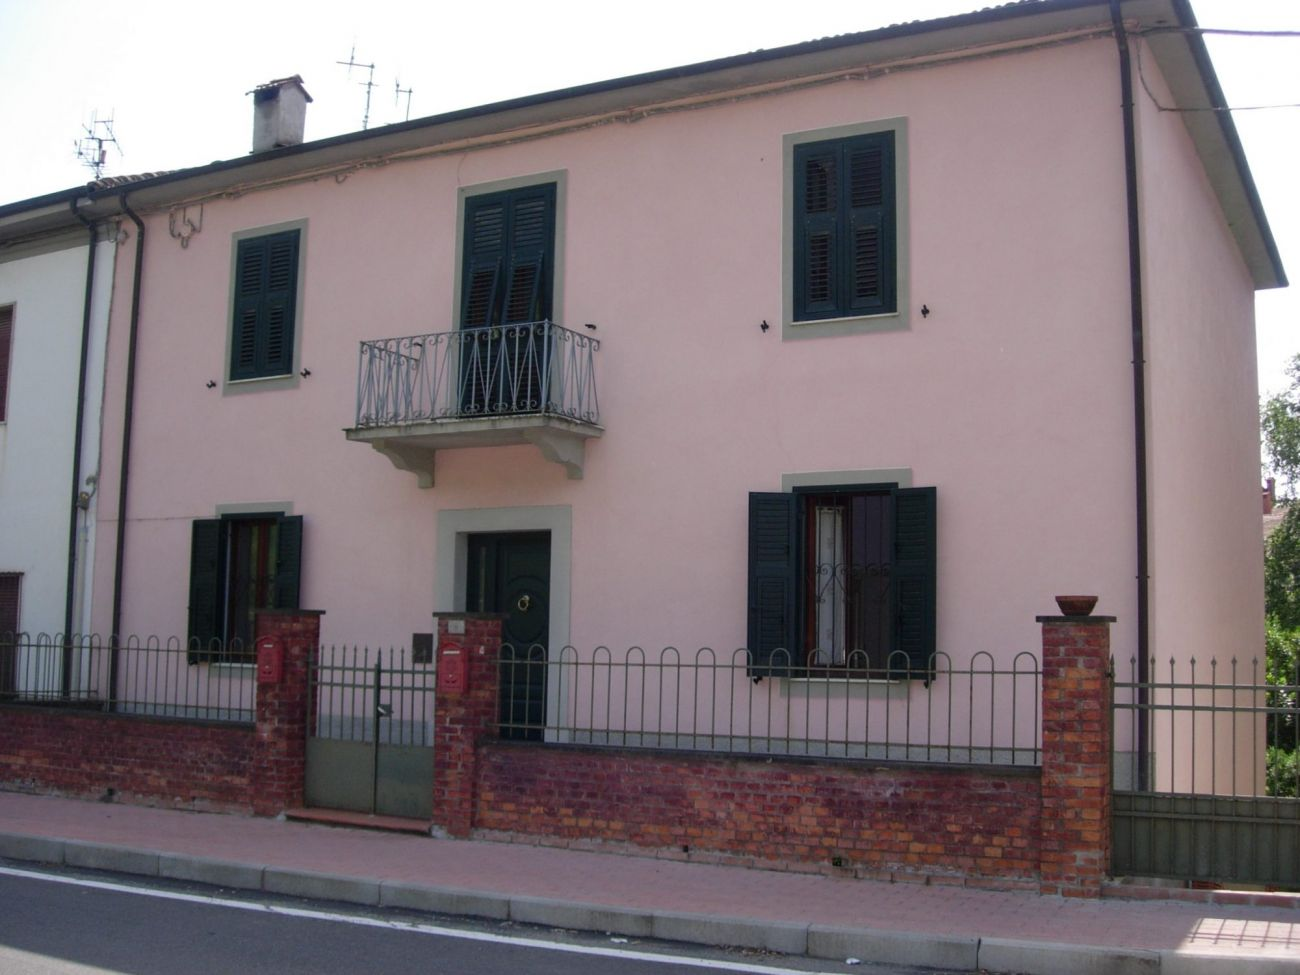 PONTREMOLI – PORTION OF HOUSE WITH TAVERN